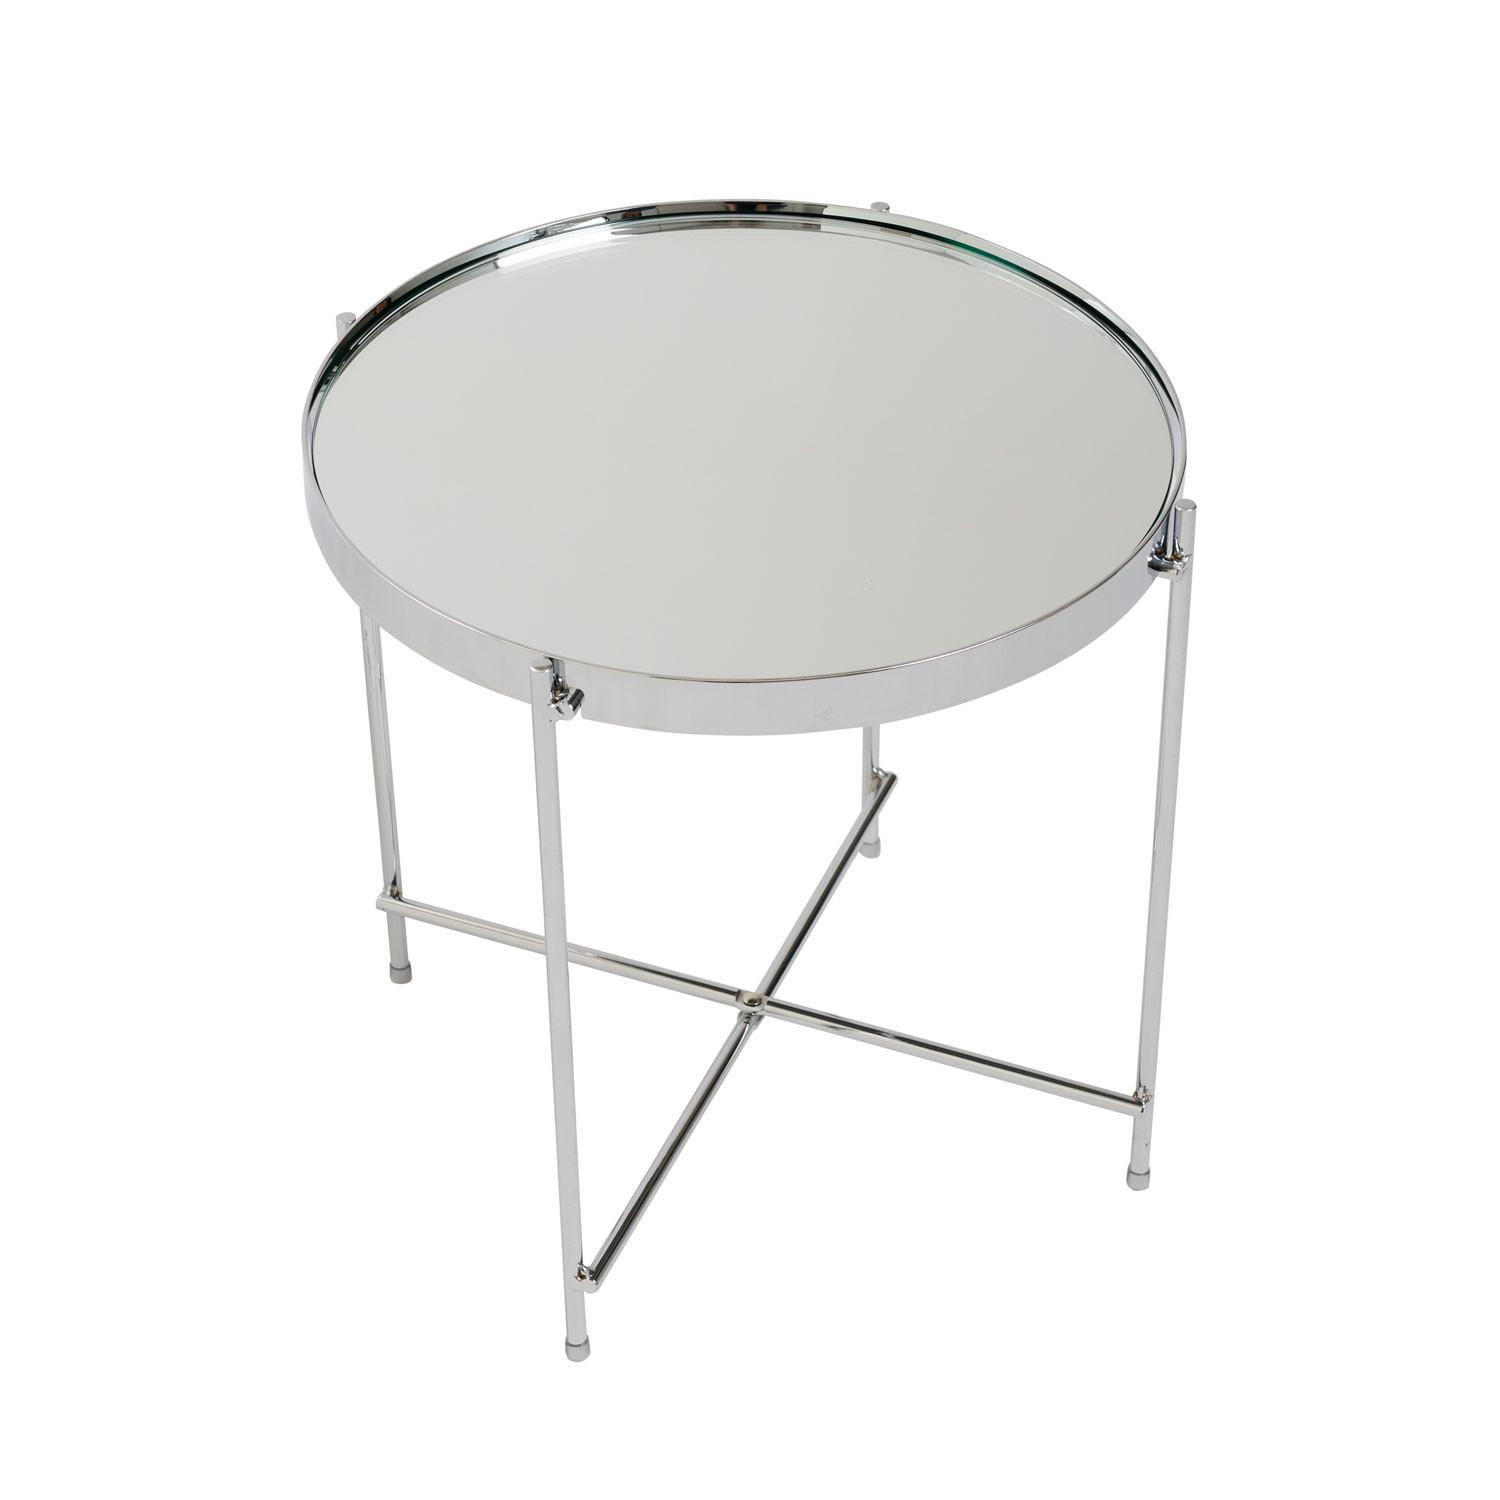 Eurostyle Trinity Round Side Table Chrome Tinted Mirror